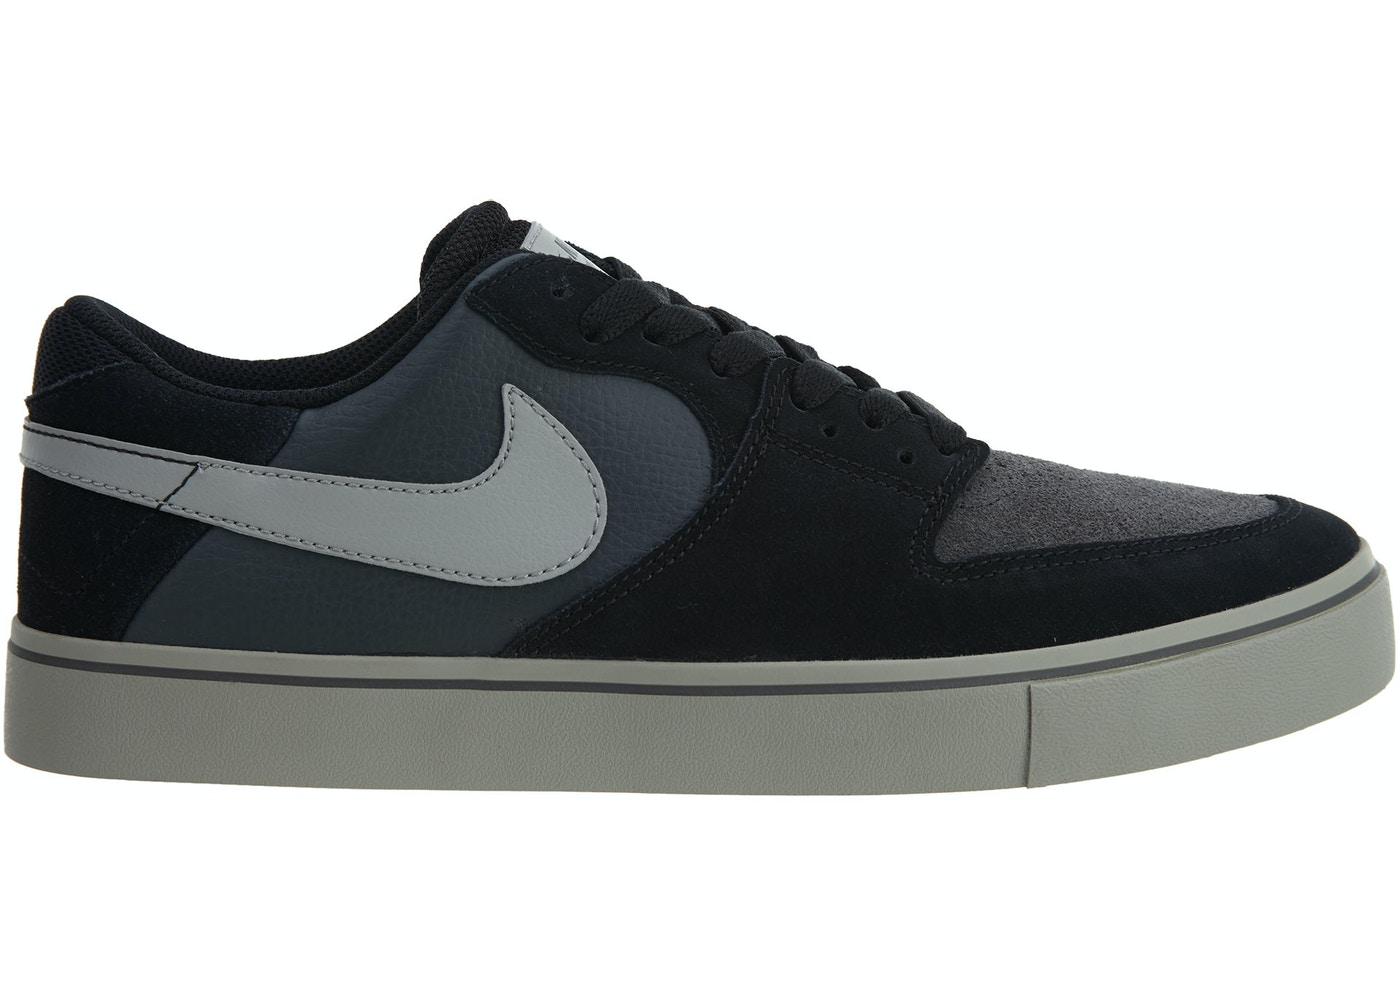 5ca29f10 Nike Paul Rodriguez 7 Vr Black/Medium Grey/Anthracite - 599673-002